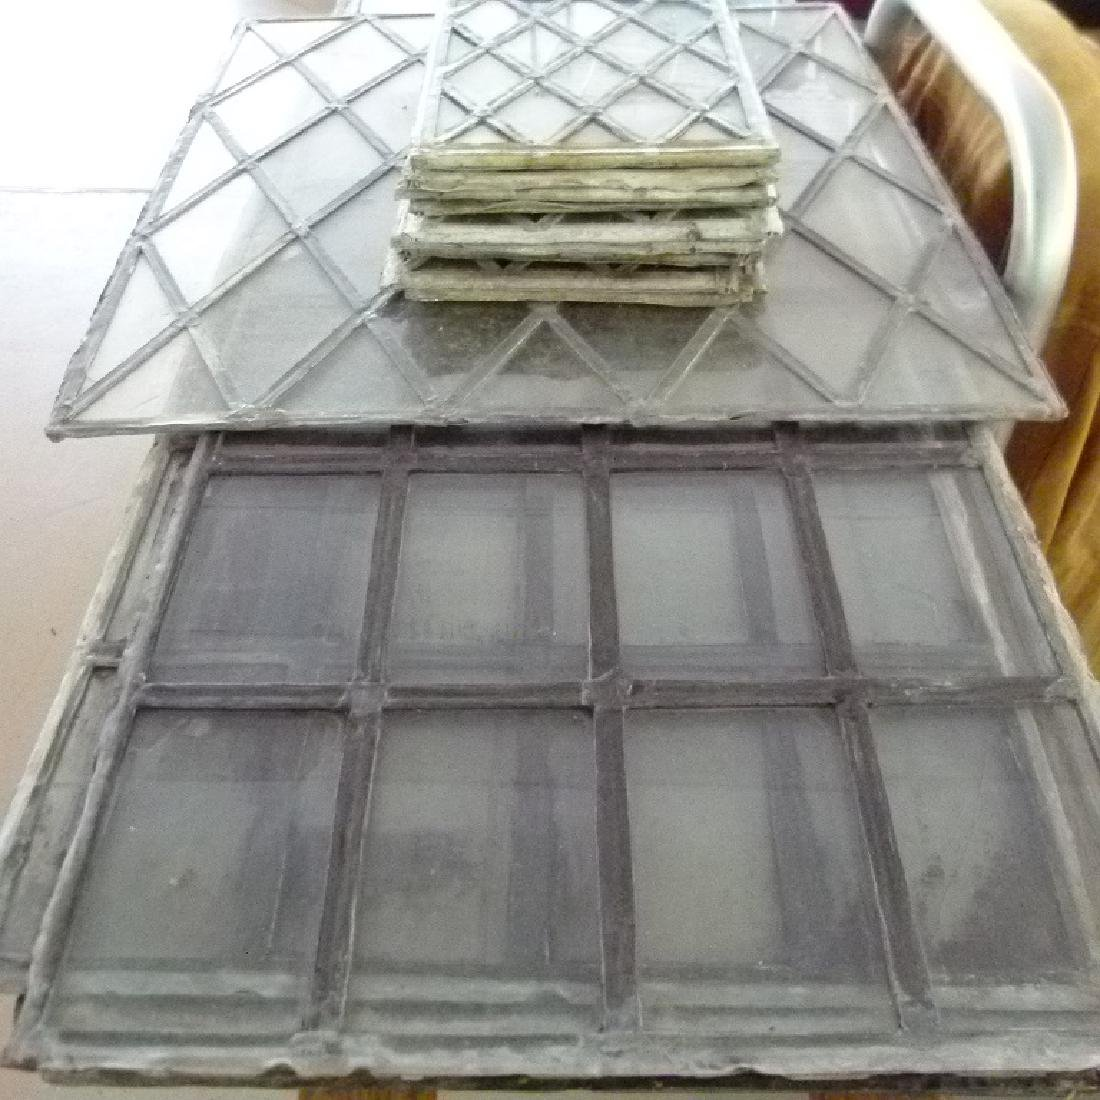 LOT ASSORT. MISSION STYLE LEADED GLASS WINDOWS